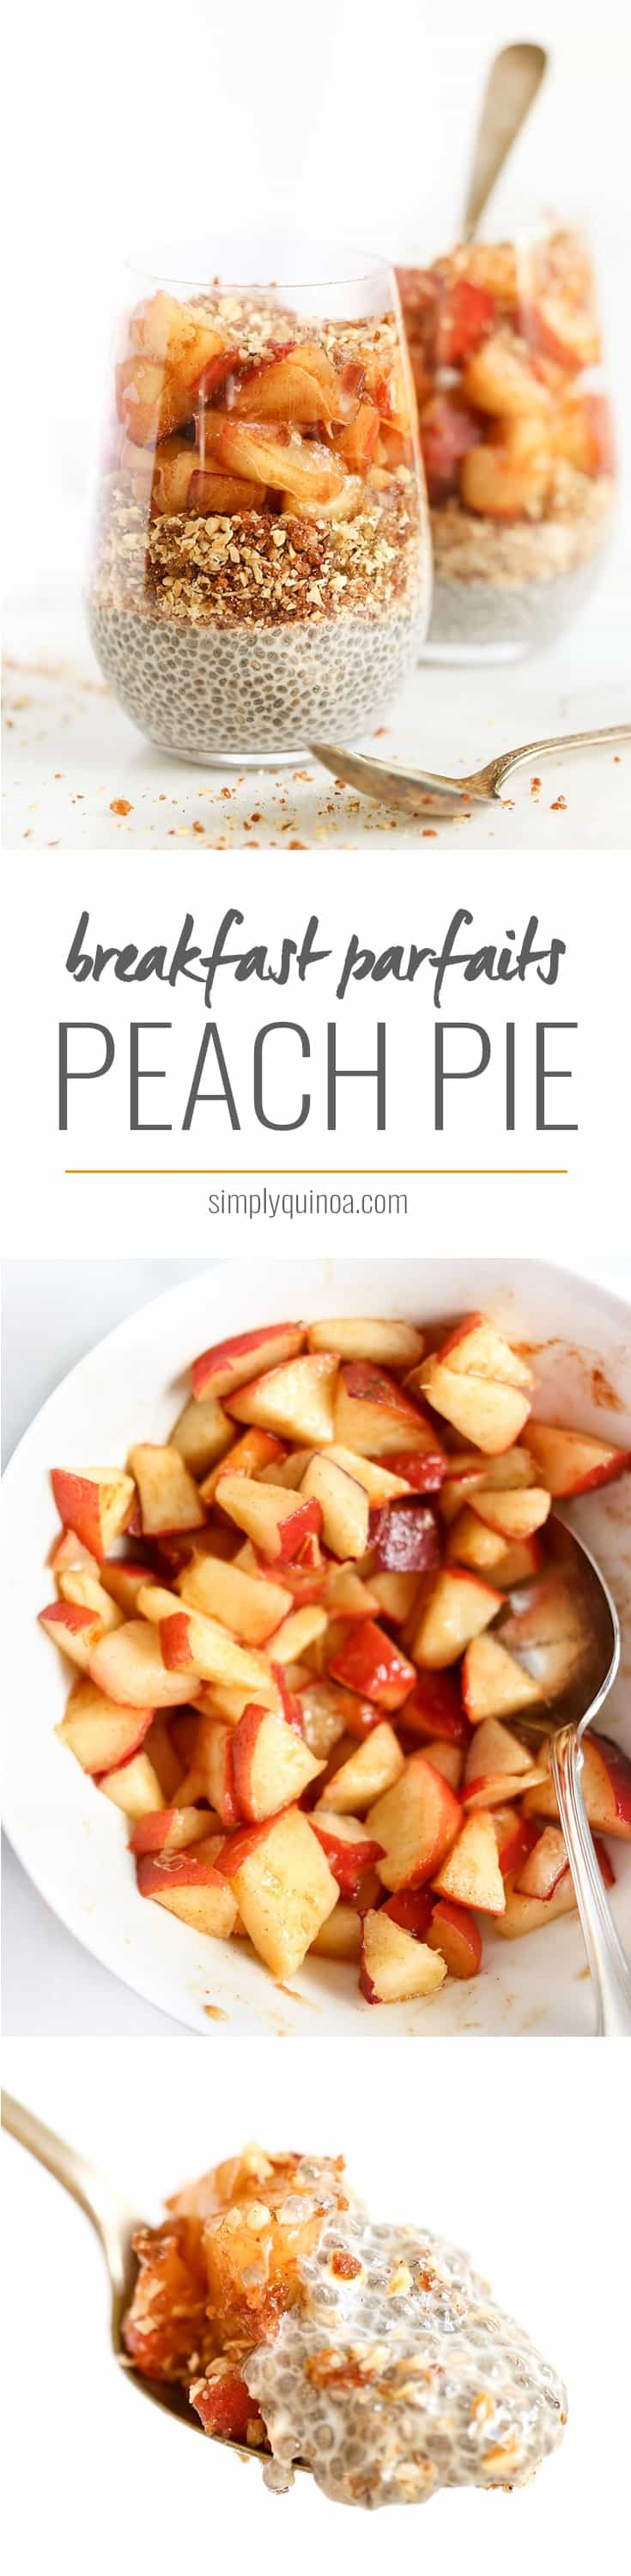 The ultimate way to start your day >> PEACH PIE BREAKFAST PARFAITS! healthy, gluten-free, vegan and SO flavorful!